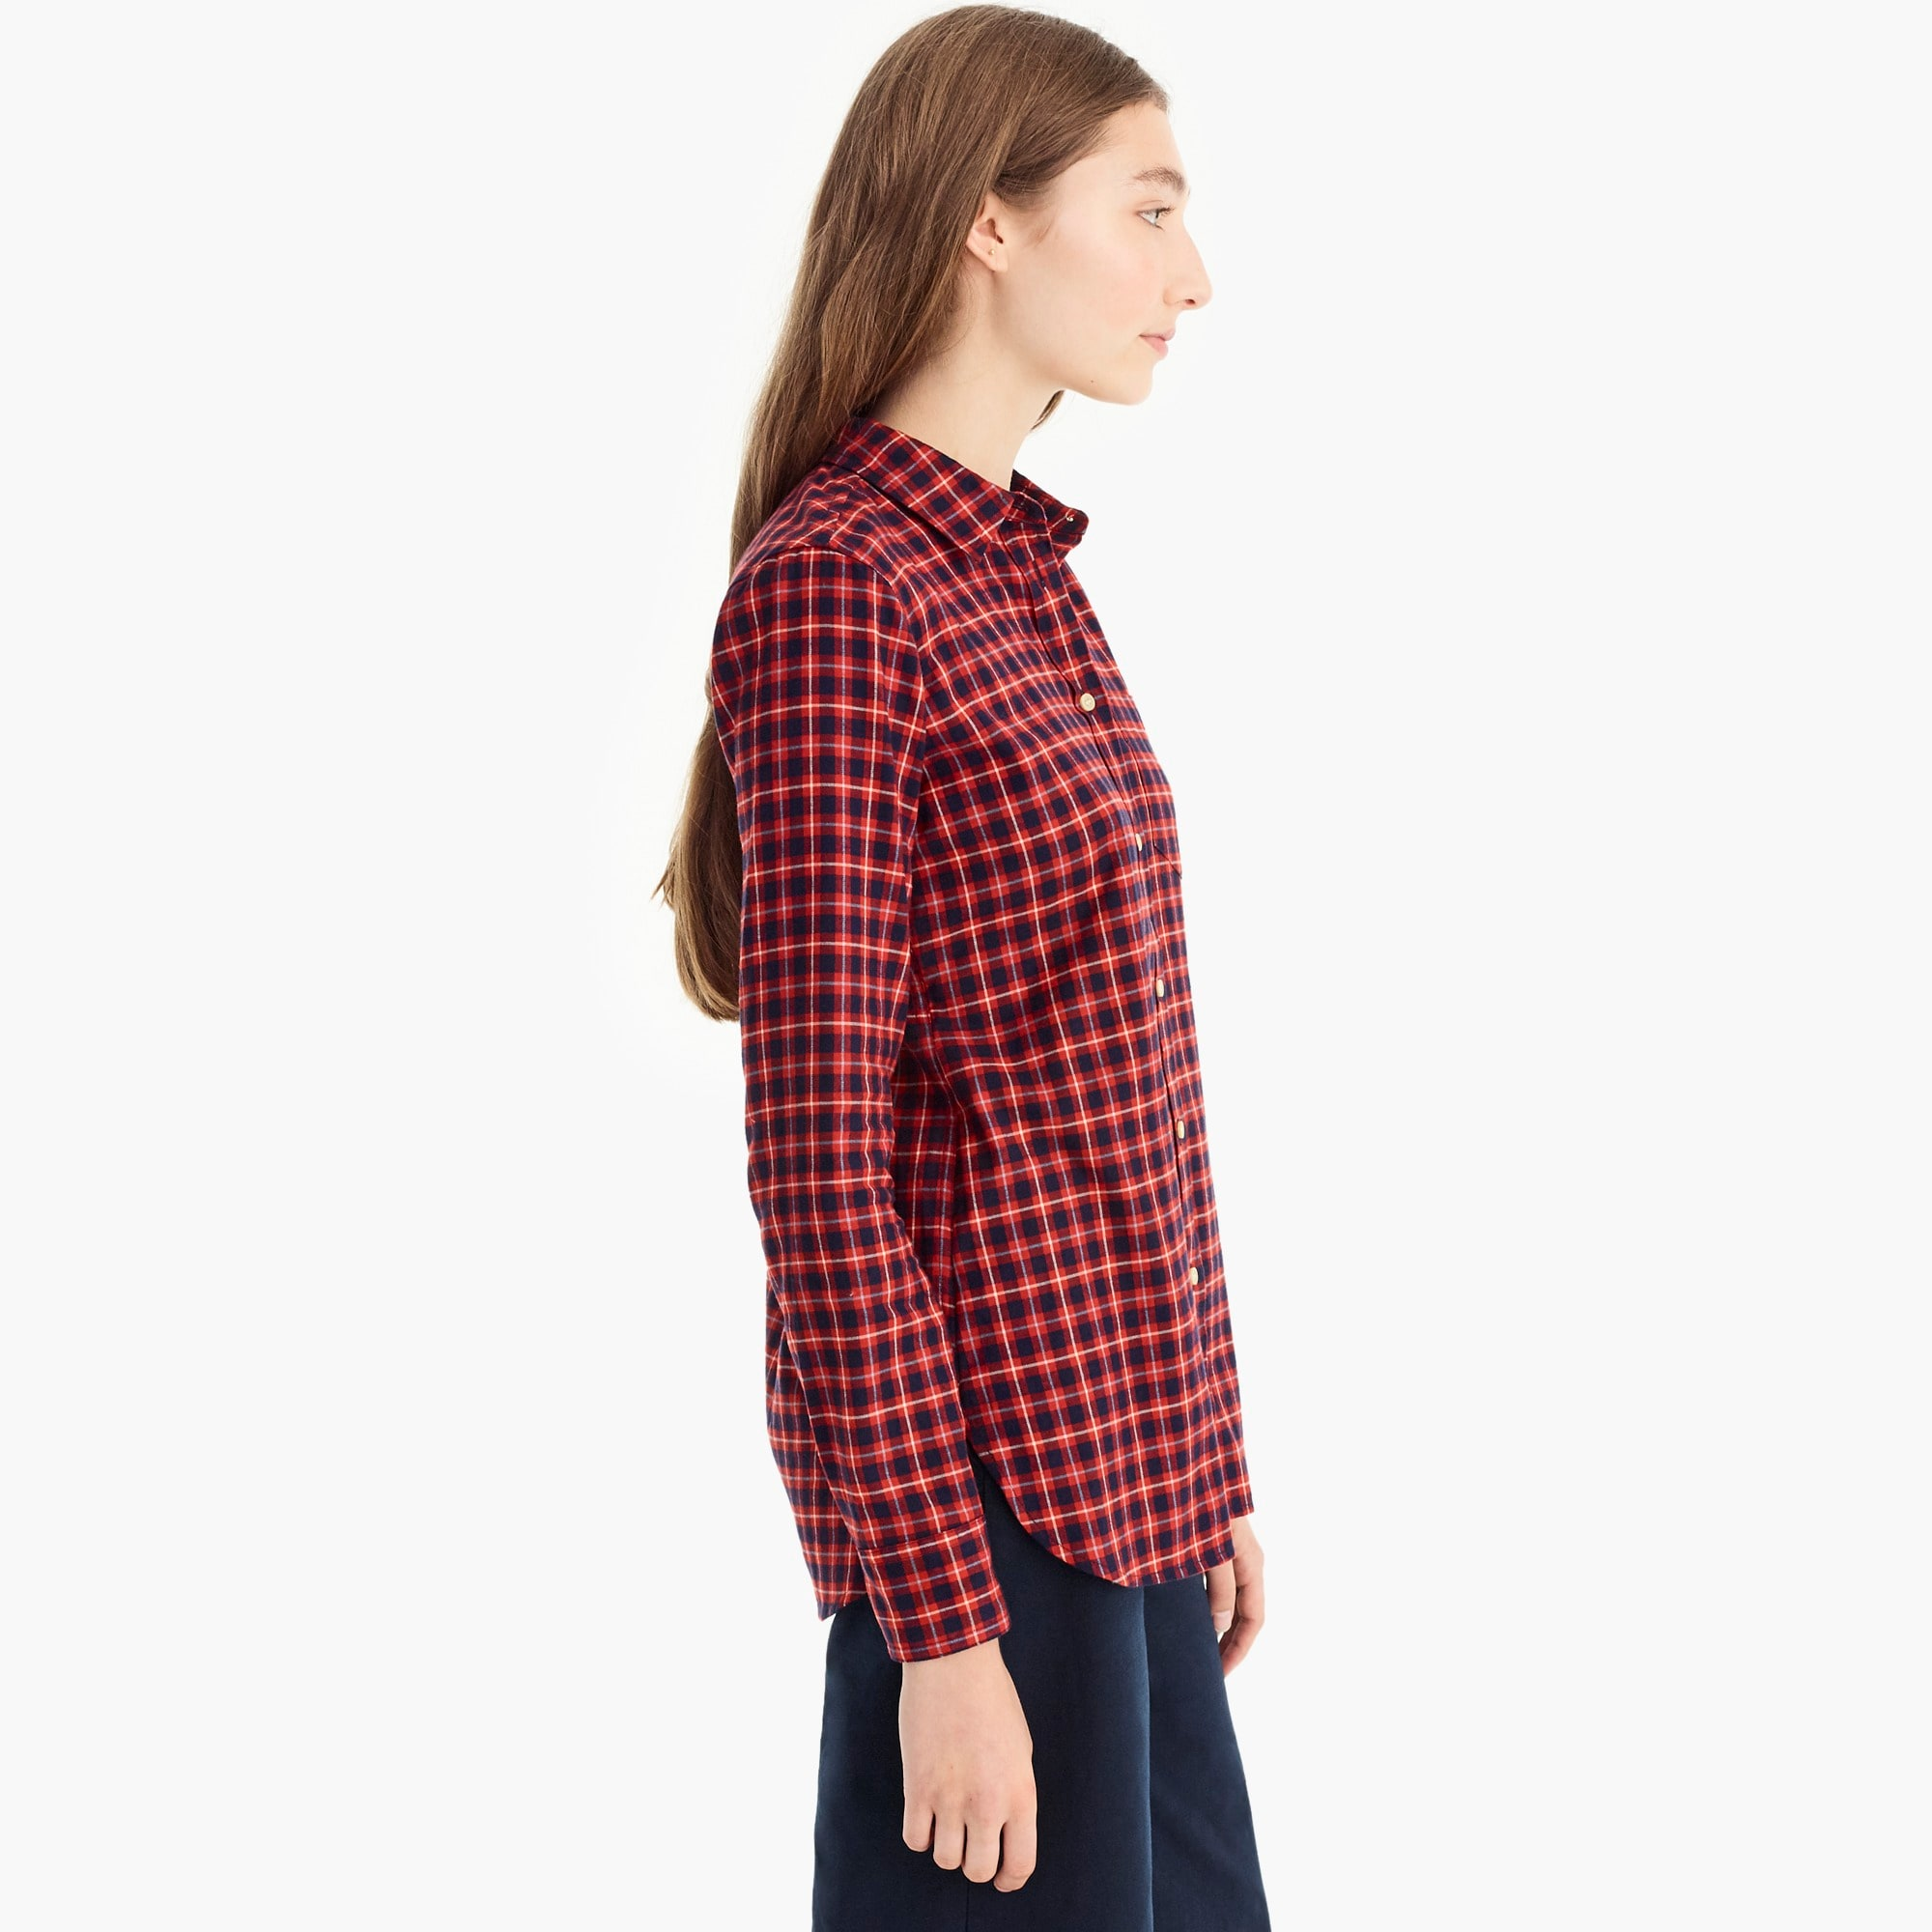 Image 4 for Classic-fit shirt in brushed twill flannel